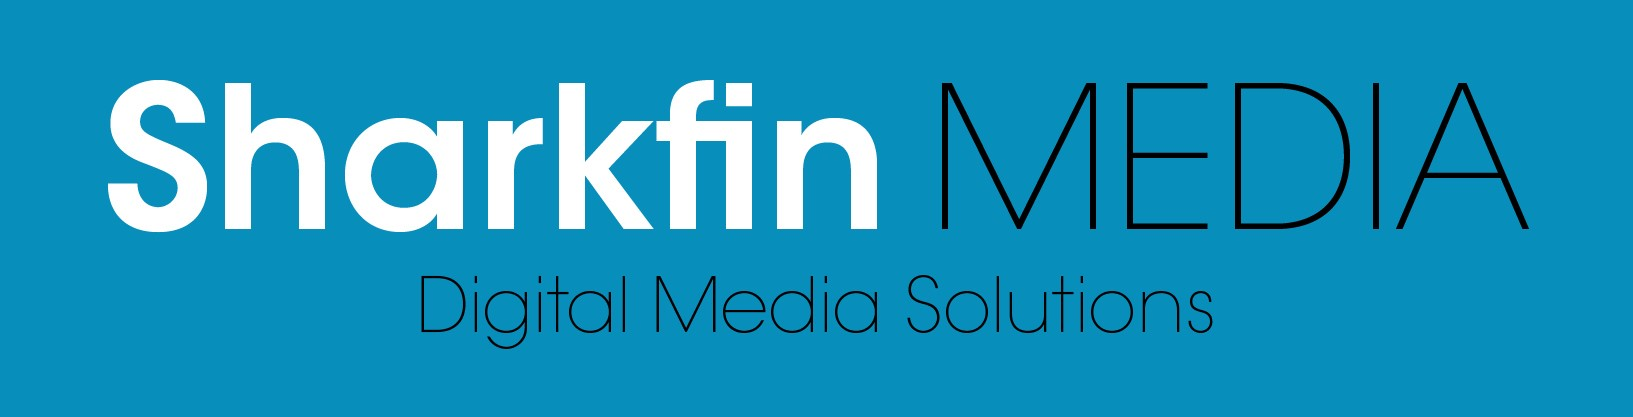 Sharkfin Media